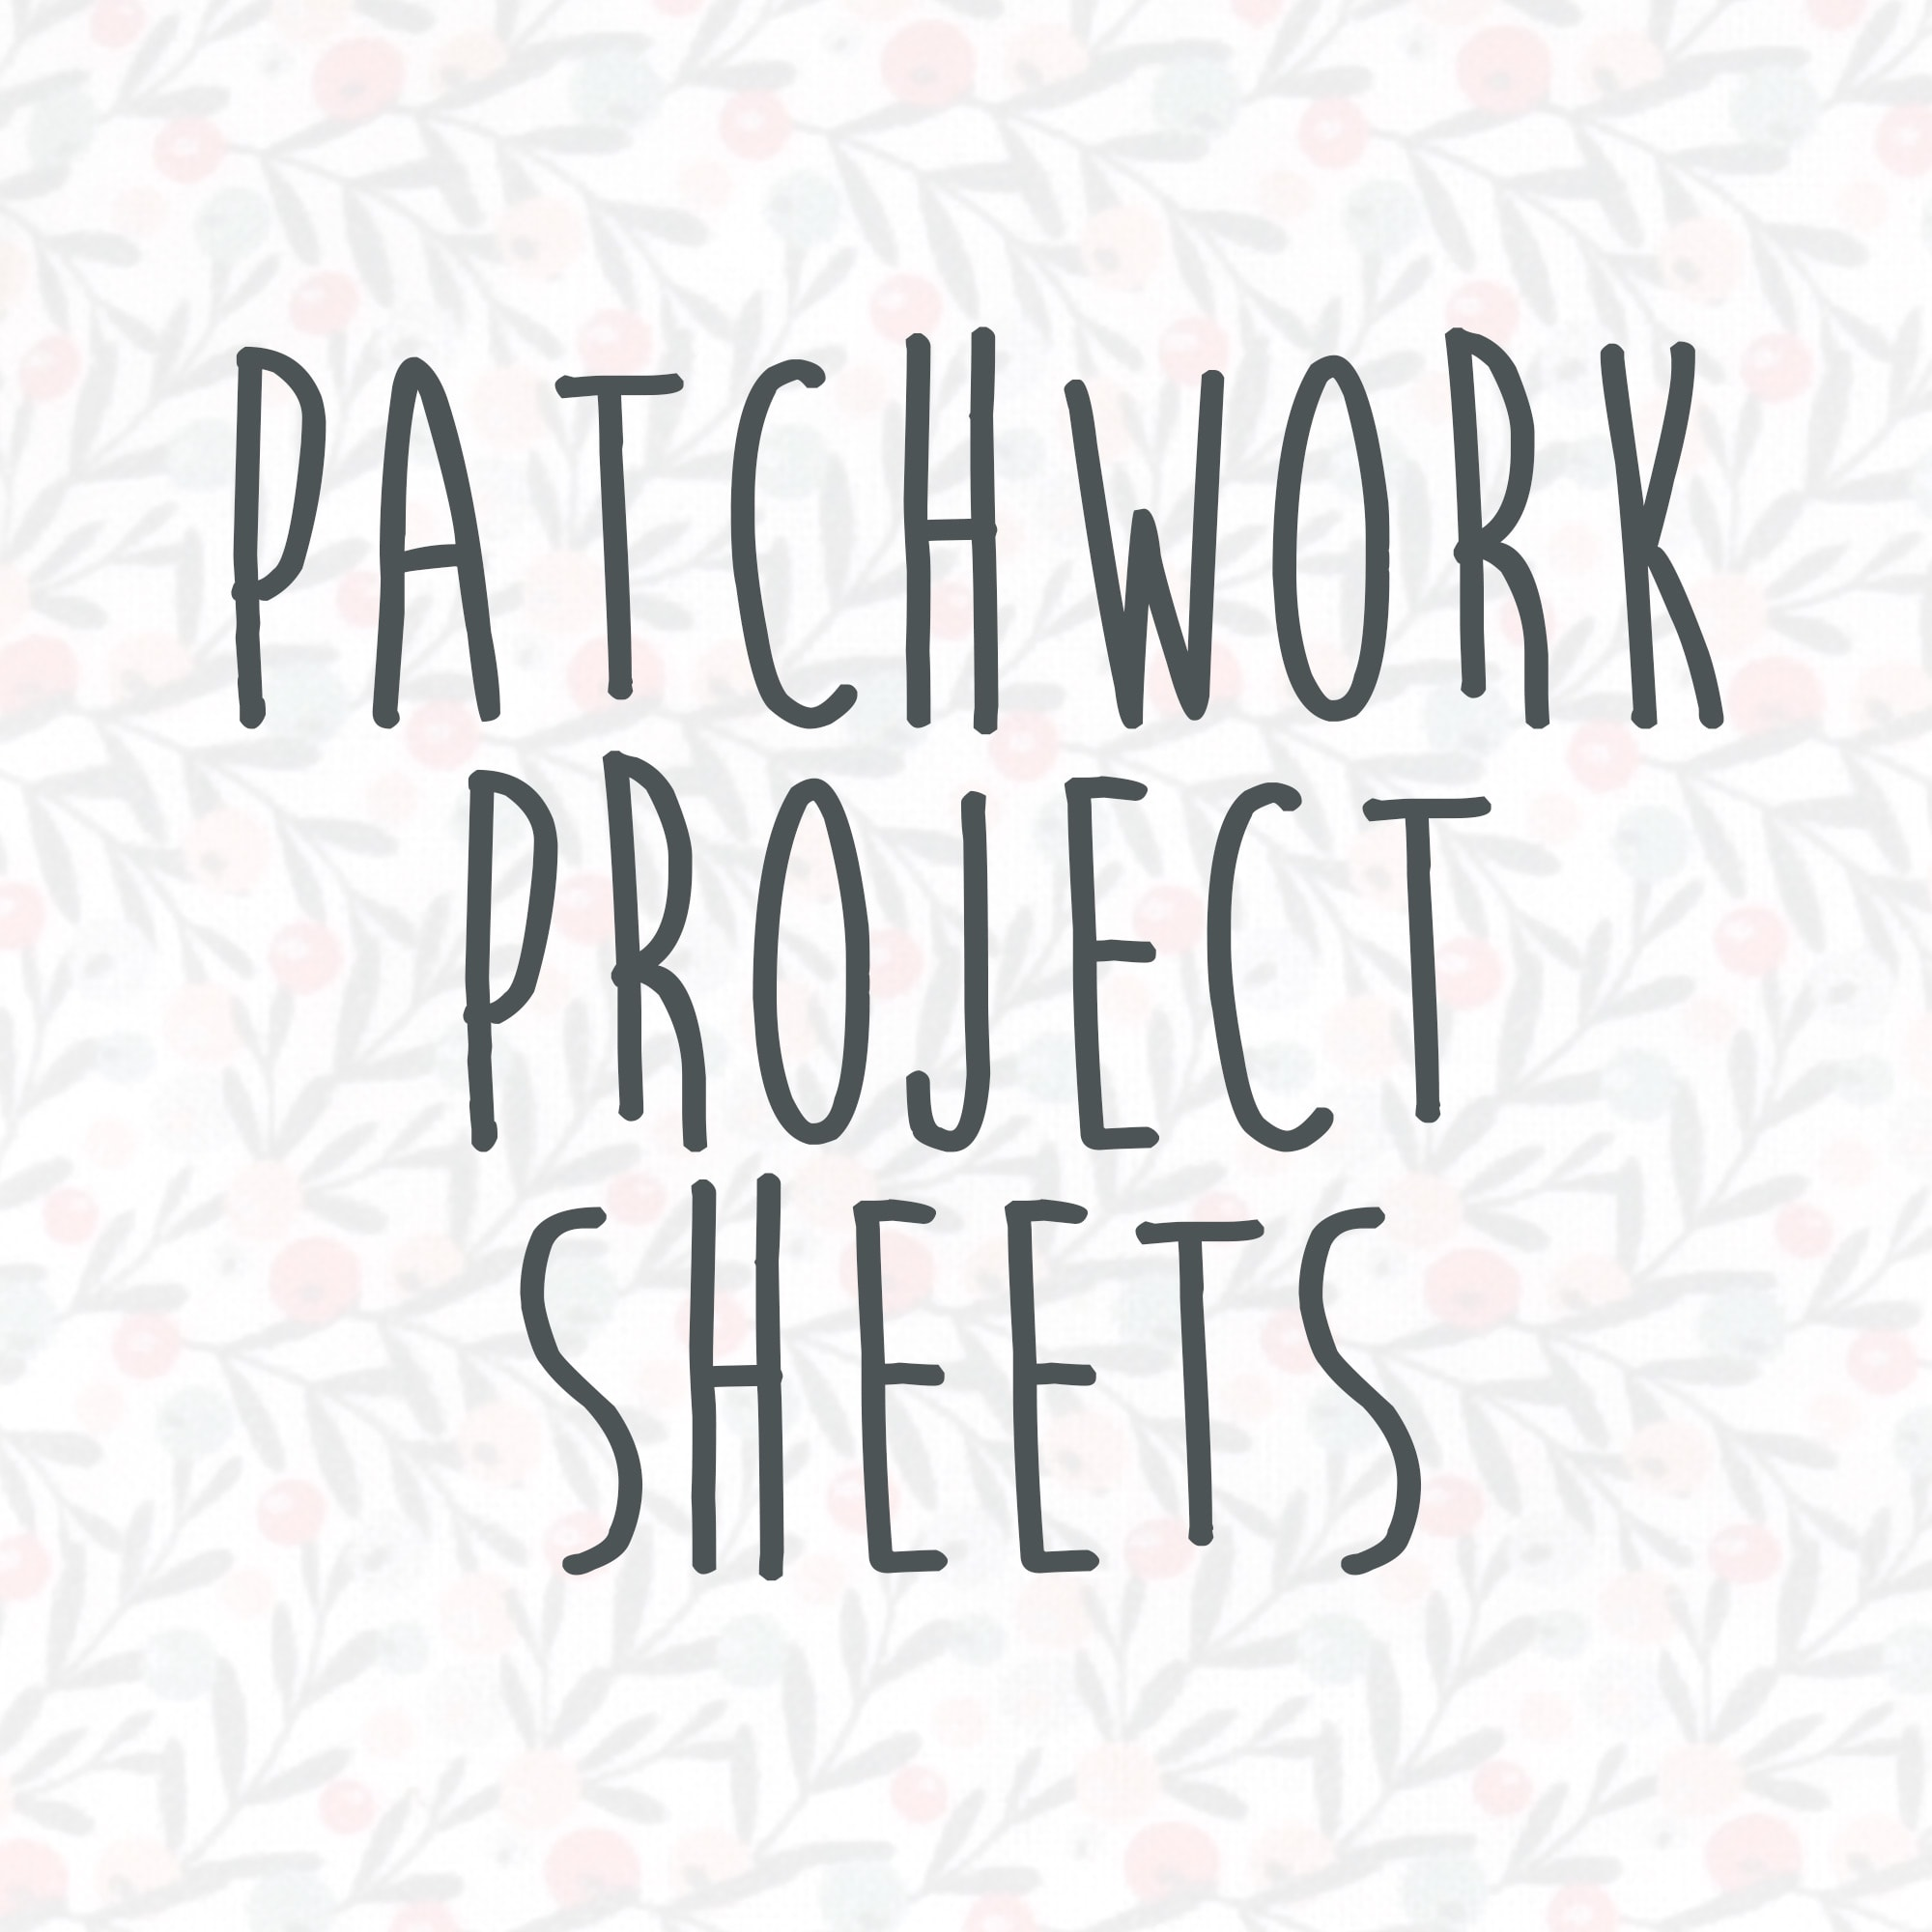 patchwork project sheets